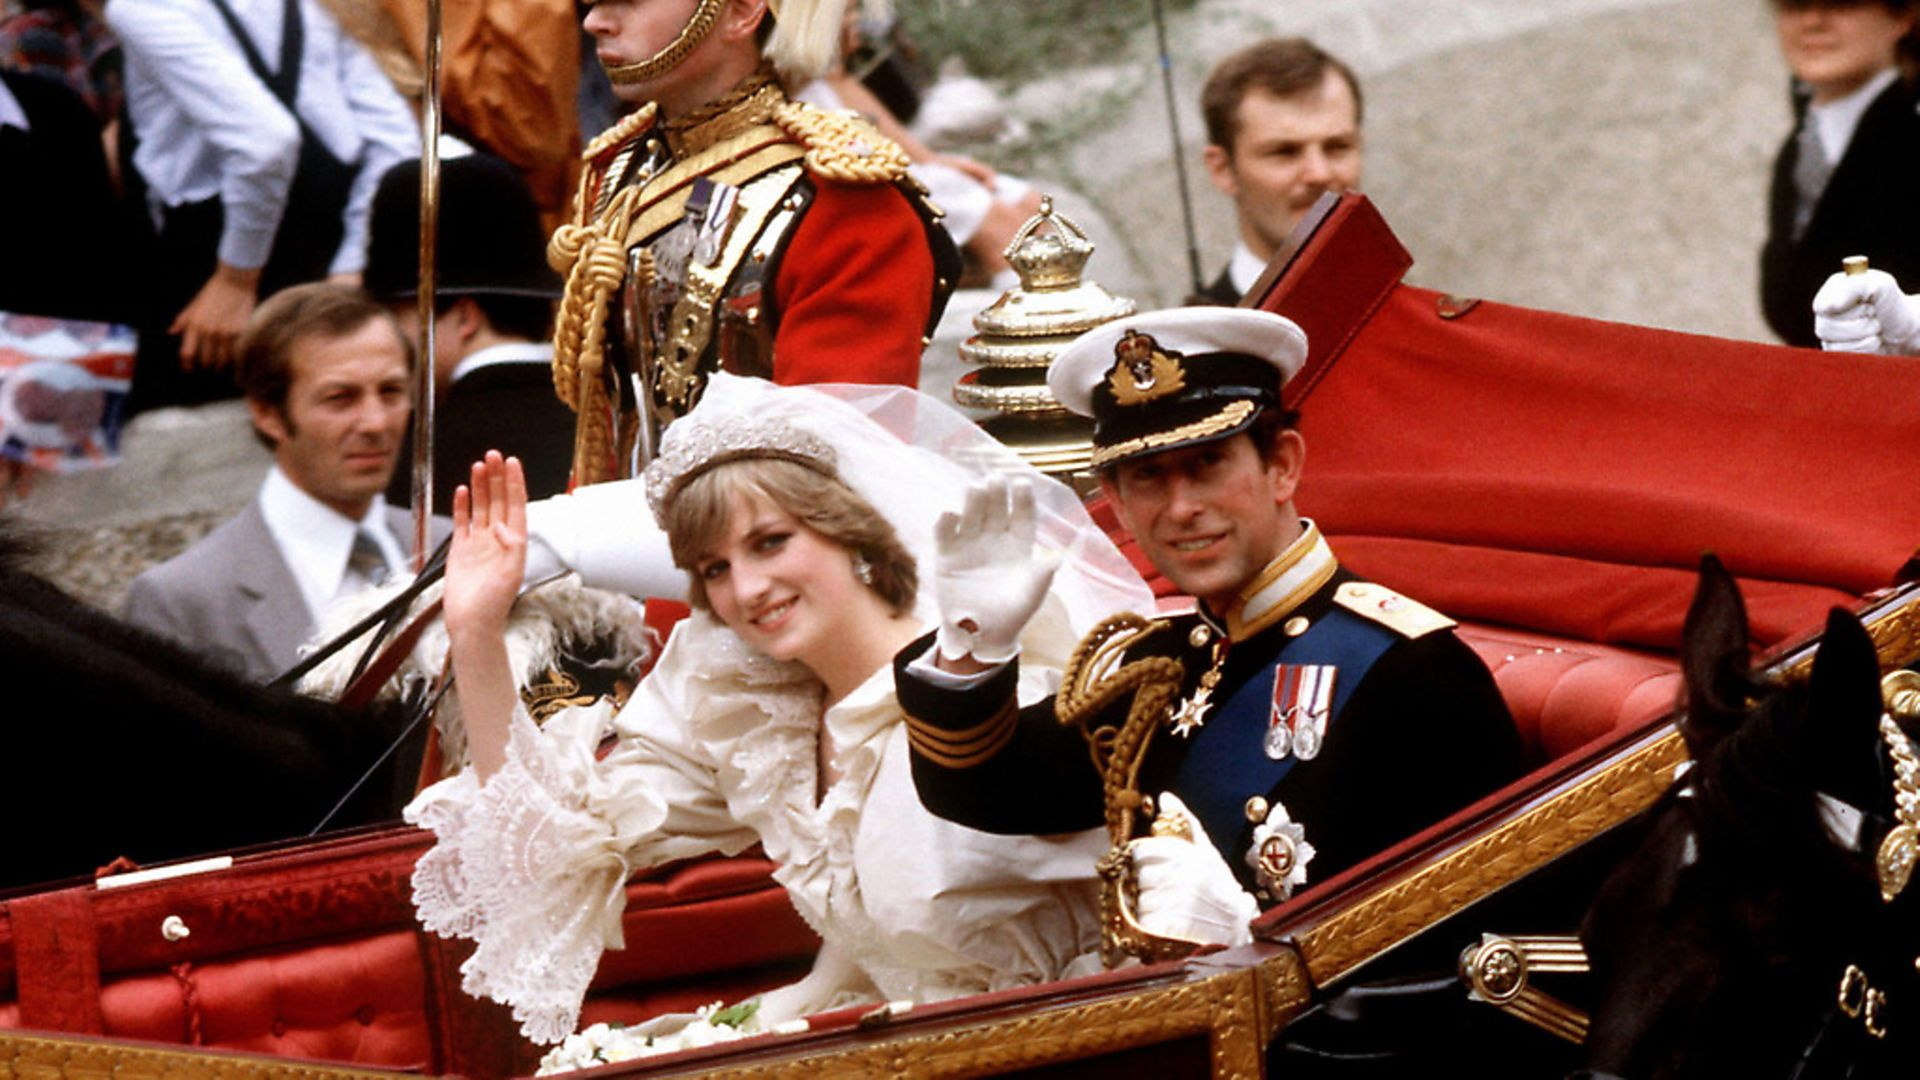 Princess Diana has been featured as one of 2017s worst Brexiteers. Picture: PA Images. - Credit: PA Archive/PA Images